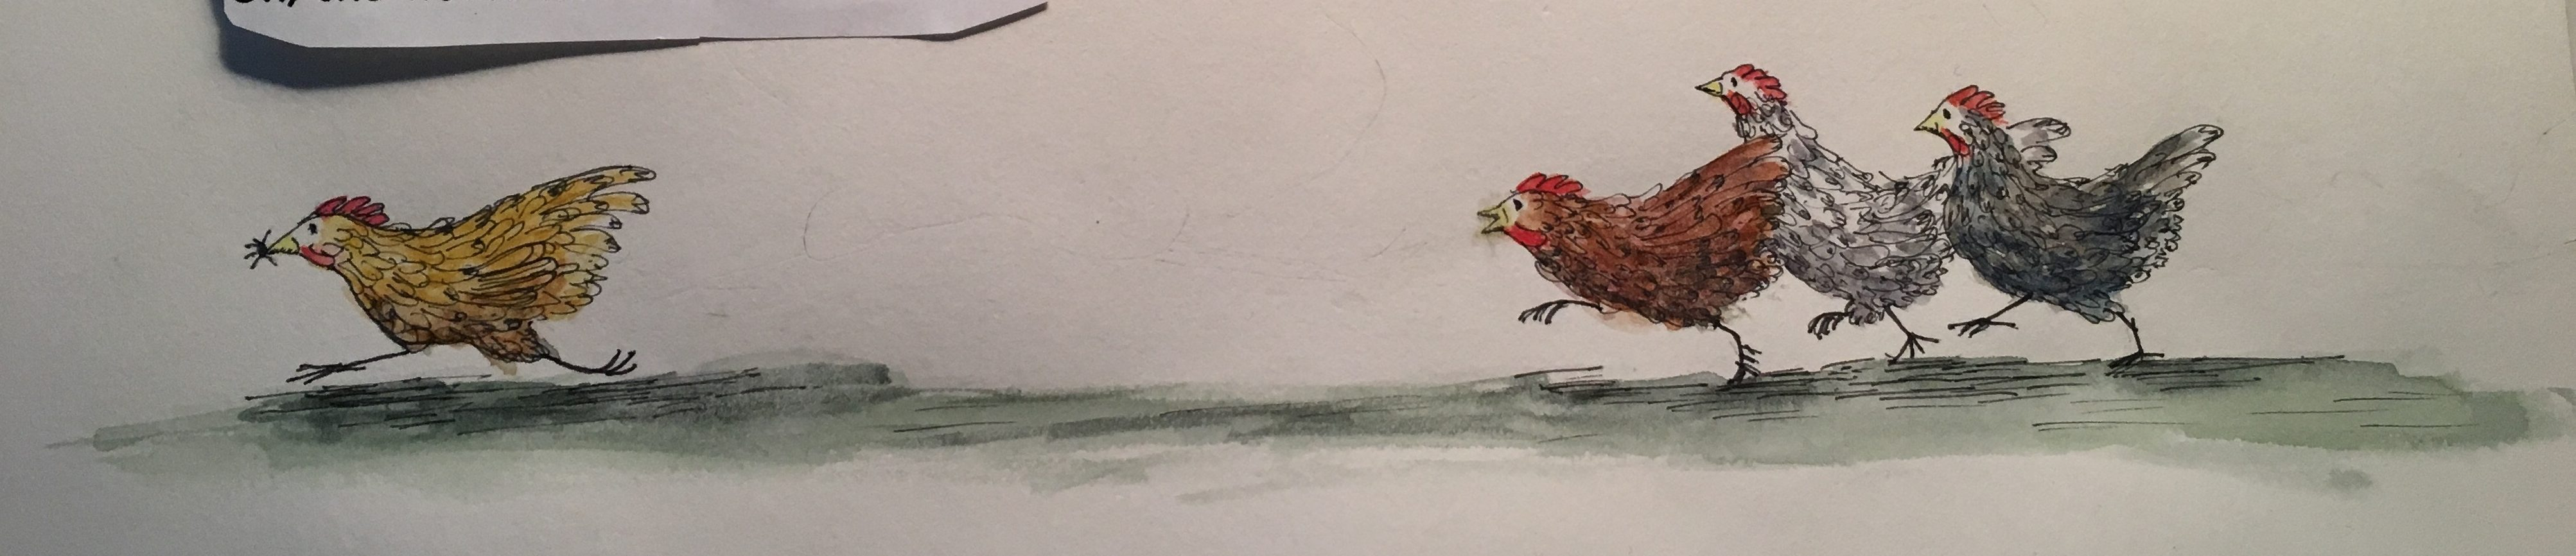 sketch of running chickens